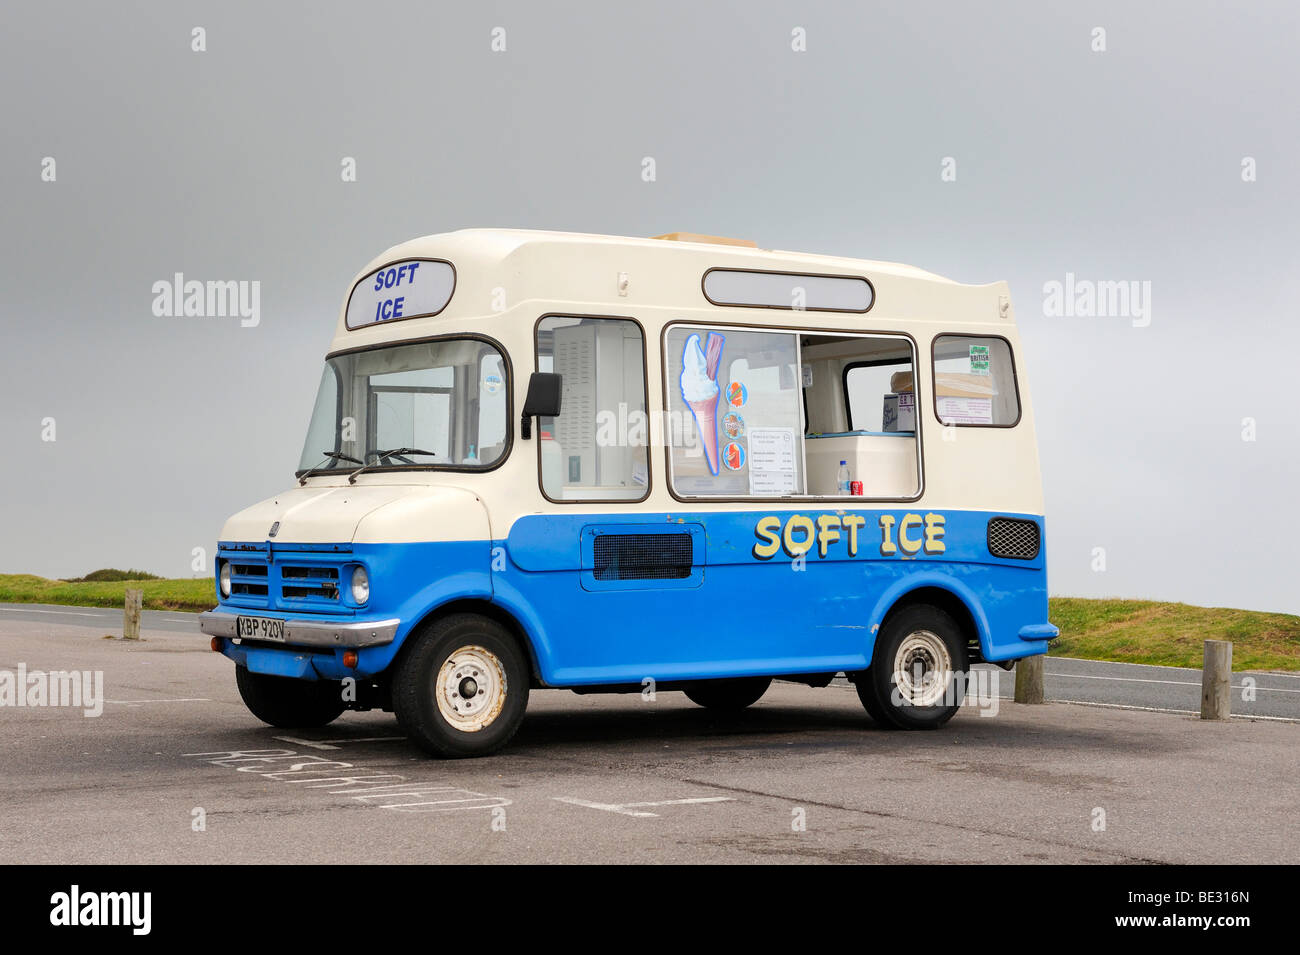 A British ice-cream van in a car park, England, UK, Europe - Stock Image